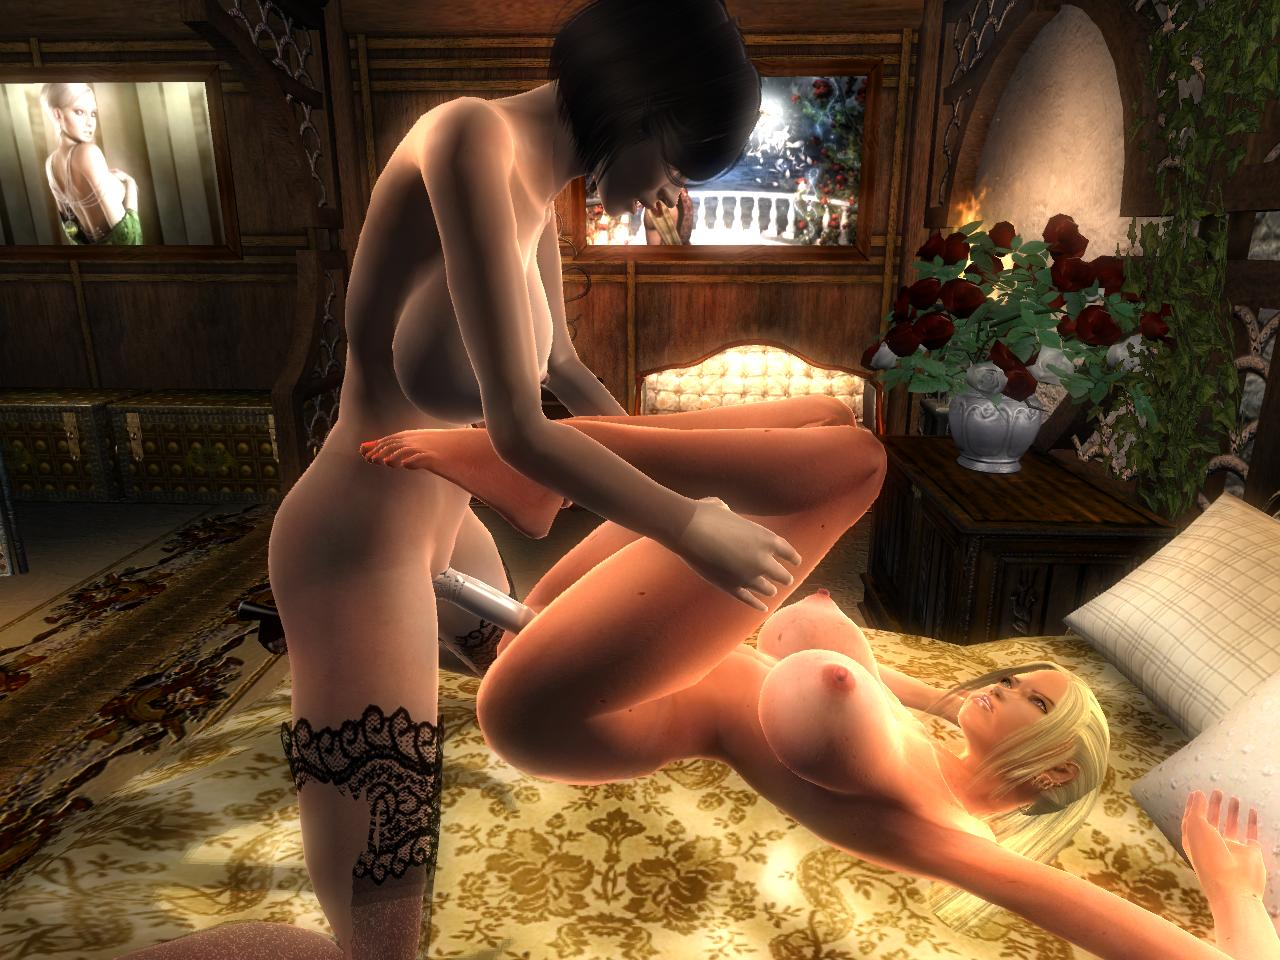 Oblivion sex animation hentai galleries